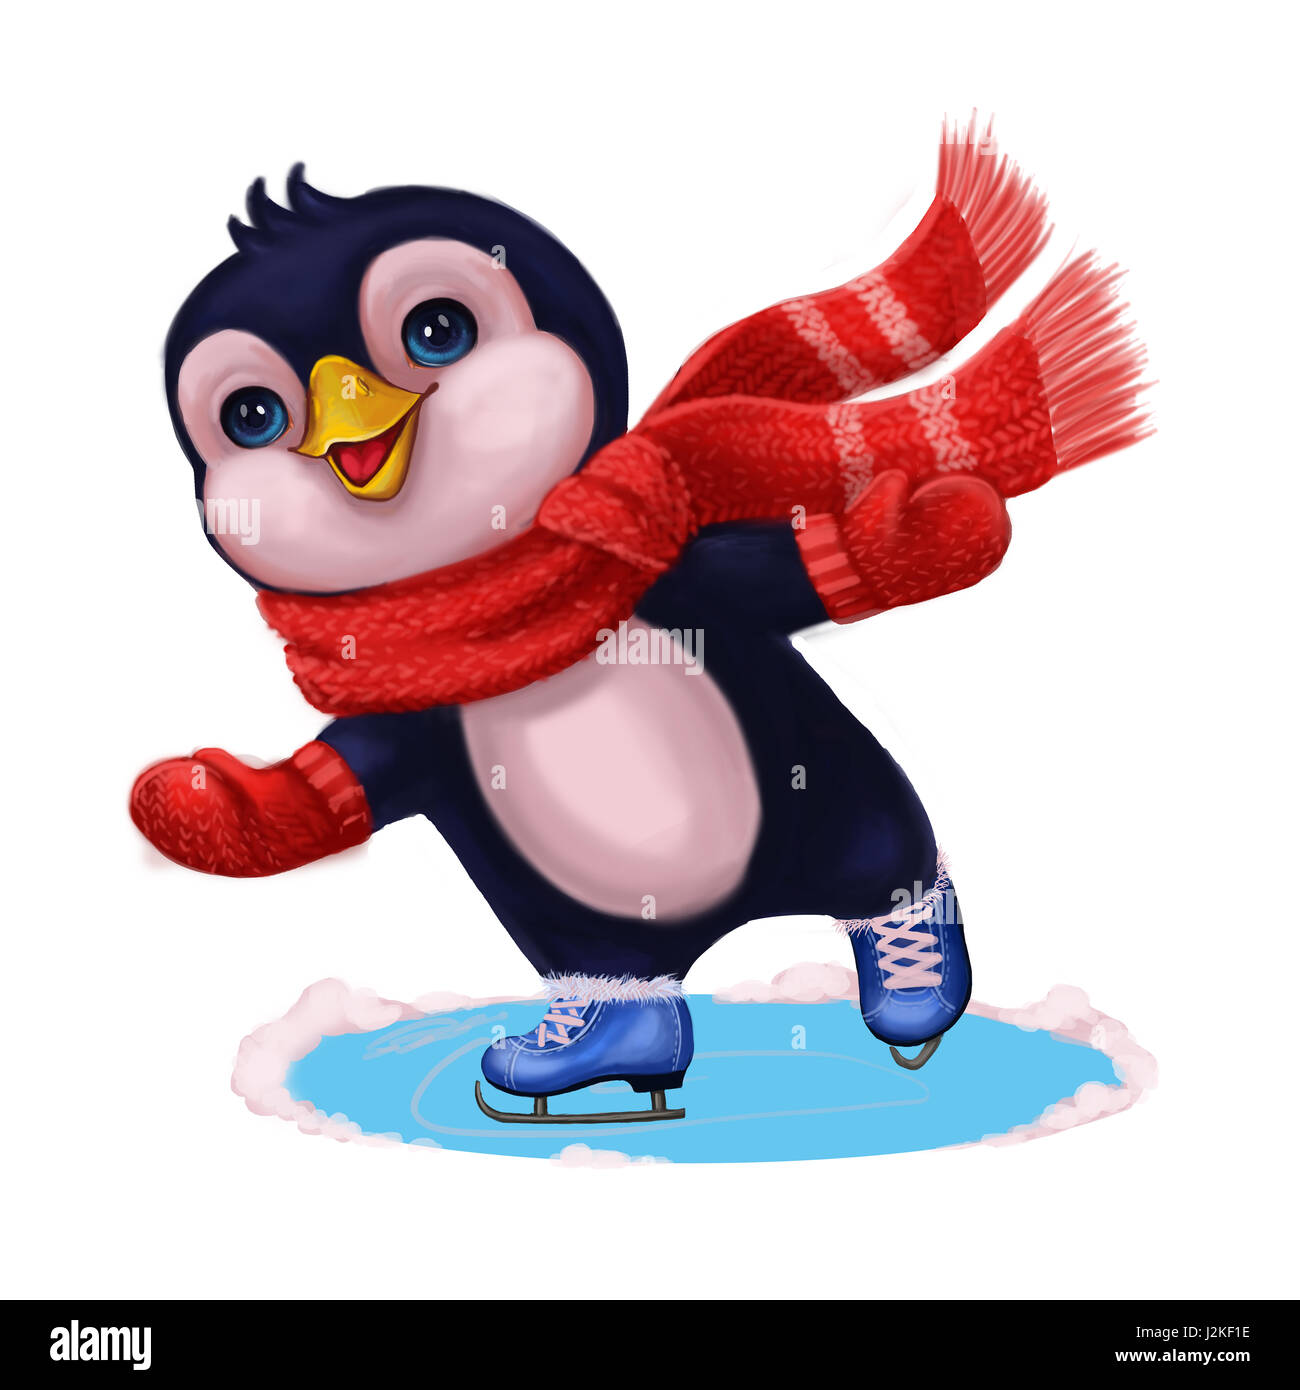 seasons greetings with cute little penguin funny character ice skating merry christmas and happy new year hand drawn